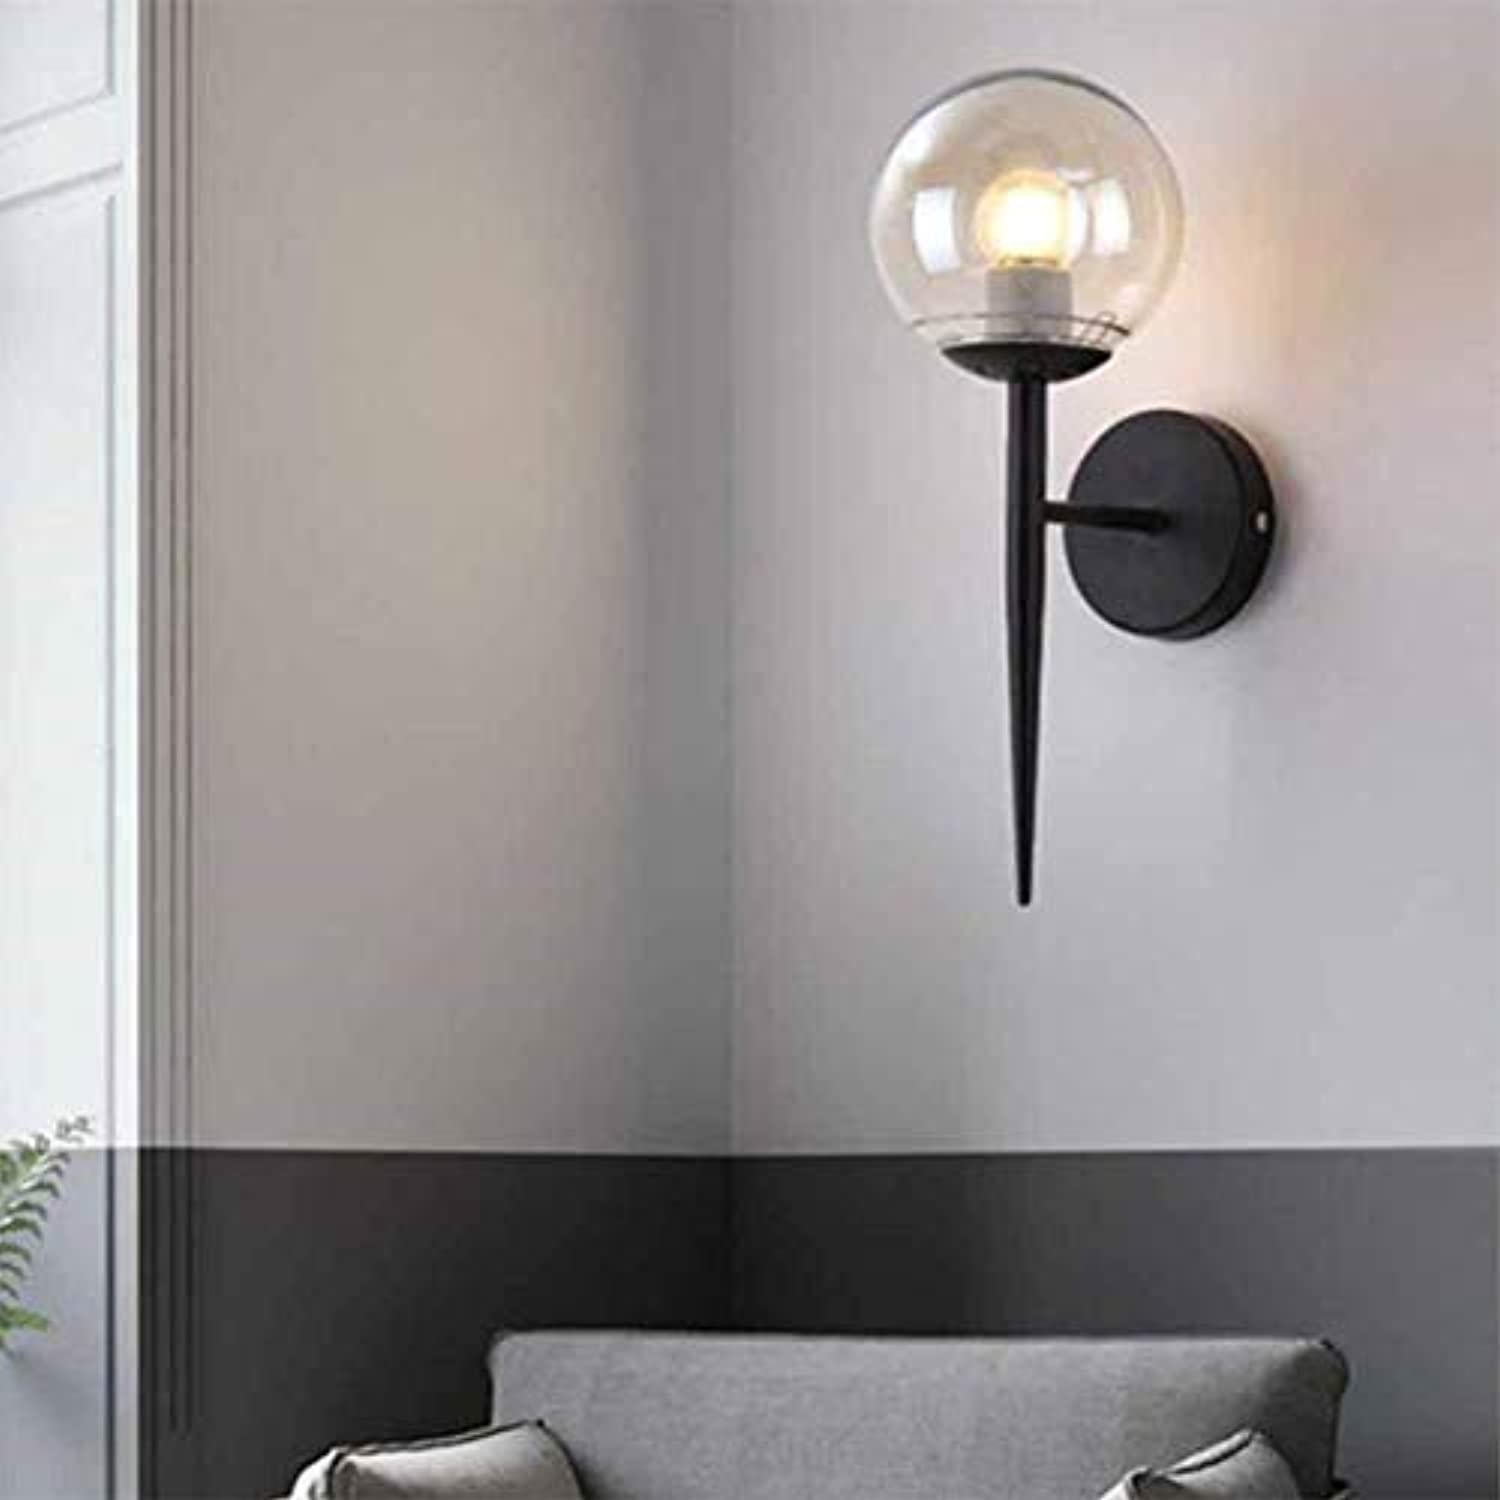 Wall Lamp Glass Art Simple for Mirror Front Hallway Bedroom Wohnzimmer-Staircase-Nacht-Leseleuchtungs-Sconce,schwarz